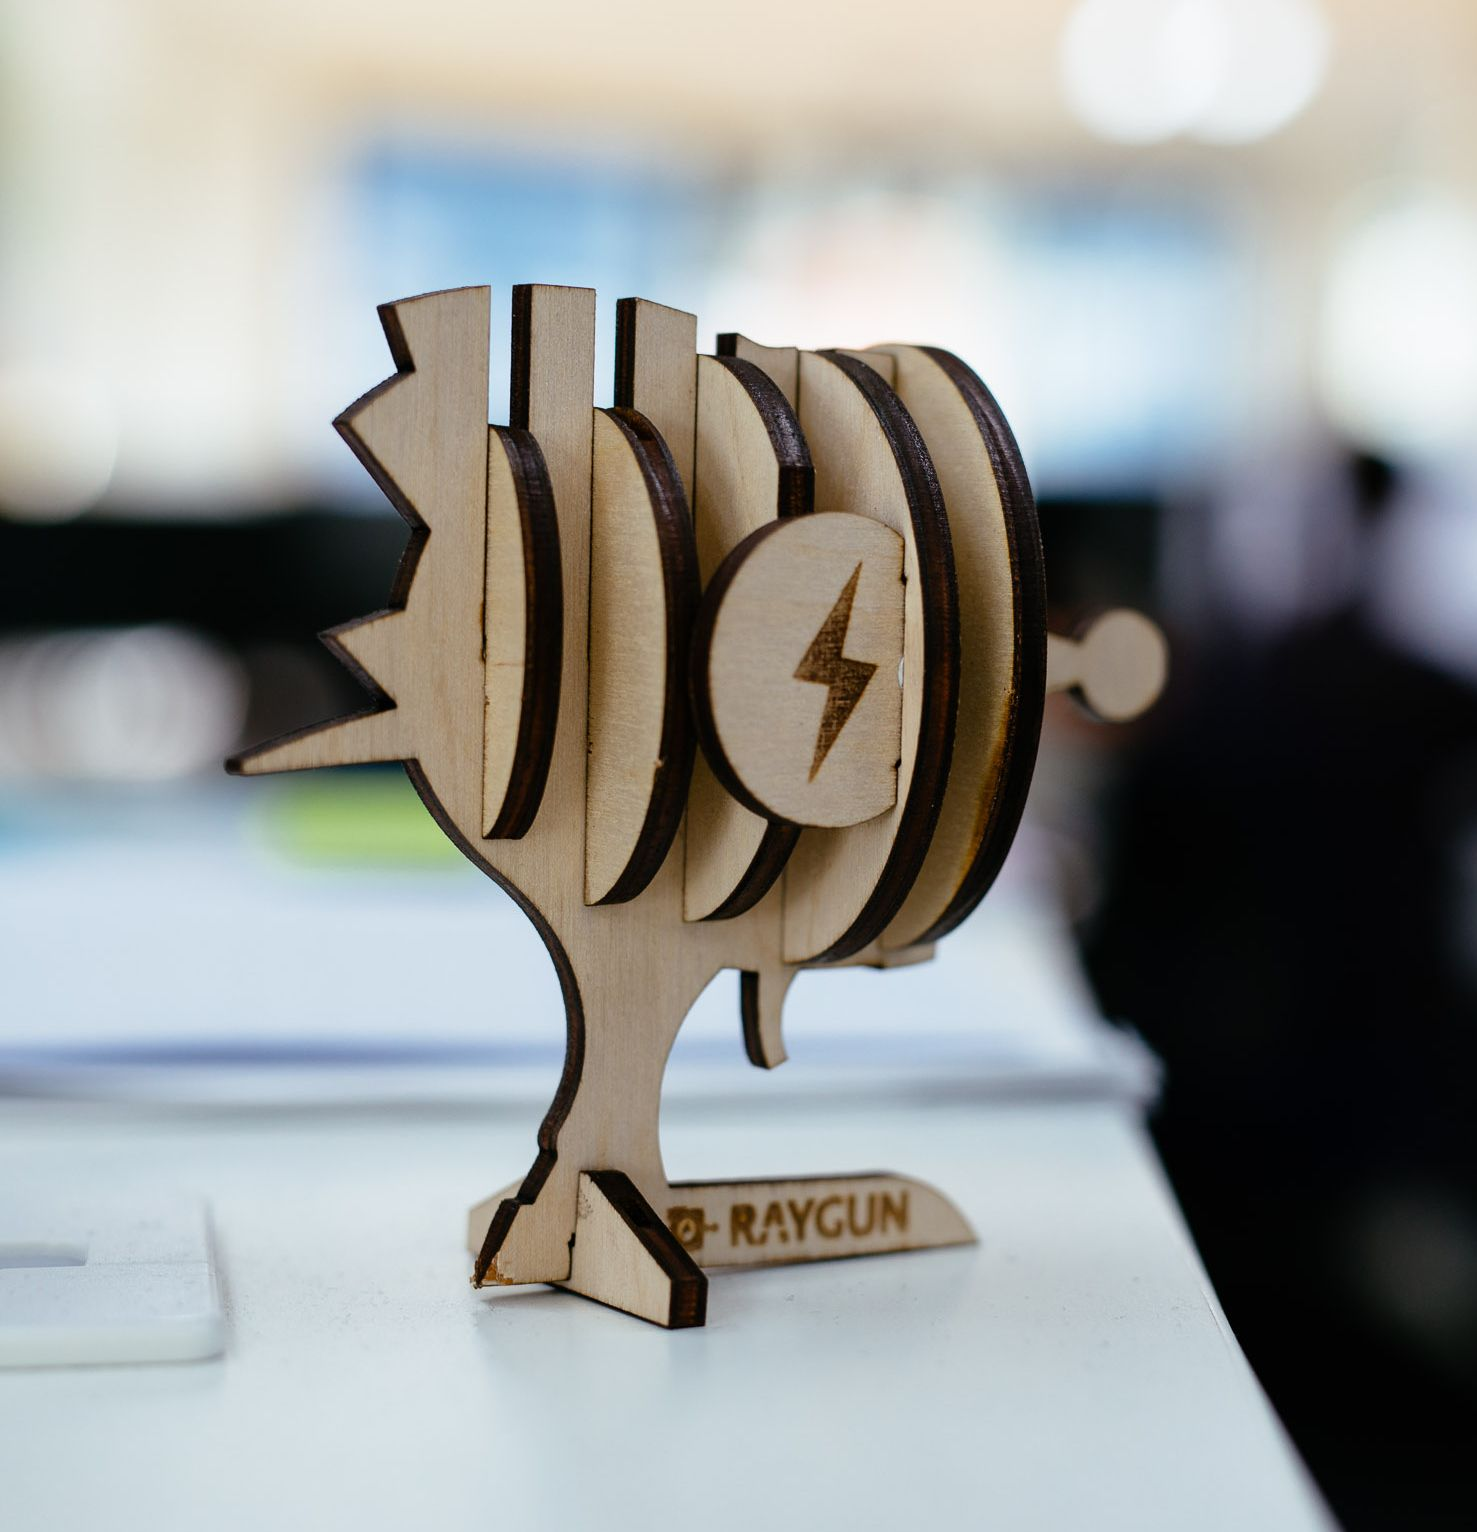 Raygun logo wooden model cutout